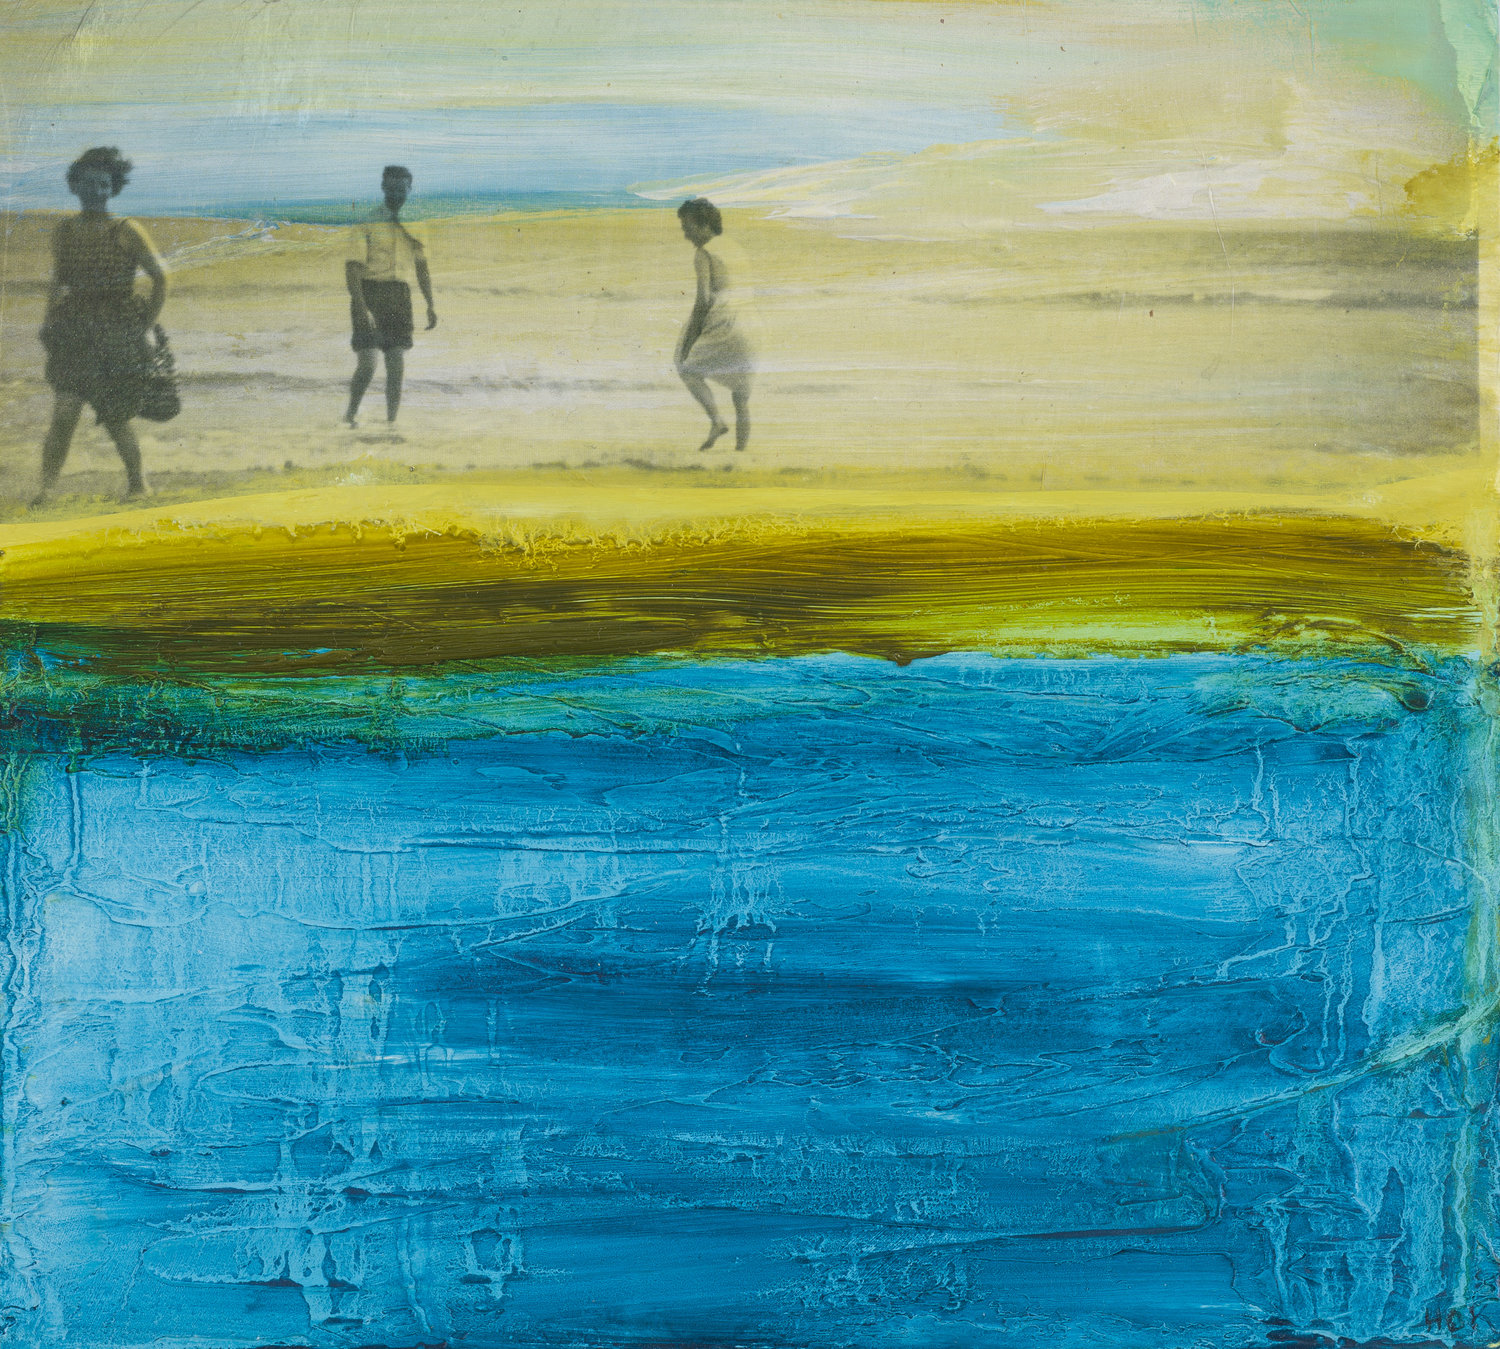 Helen O'Keeffe. Day At The Beach 1960. Painting 23 x 28cms. Frame 36 x 39cms. Oil and Gampi Tissue on board. €480